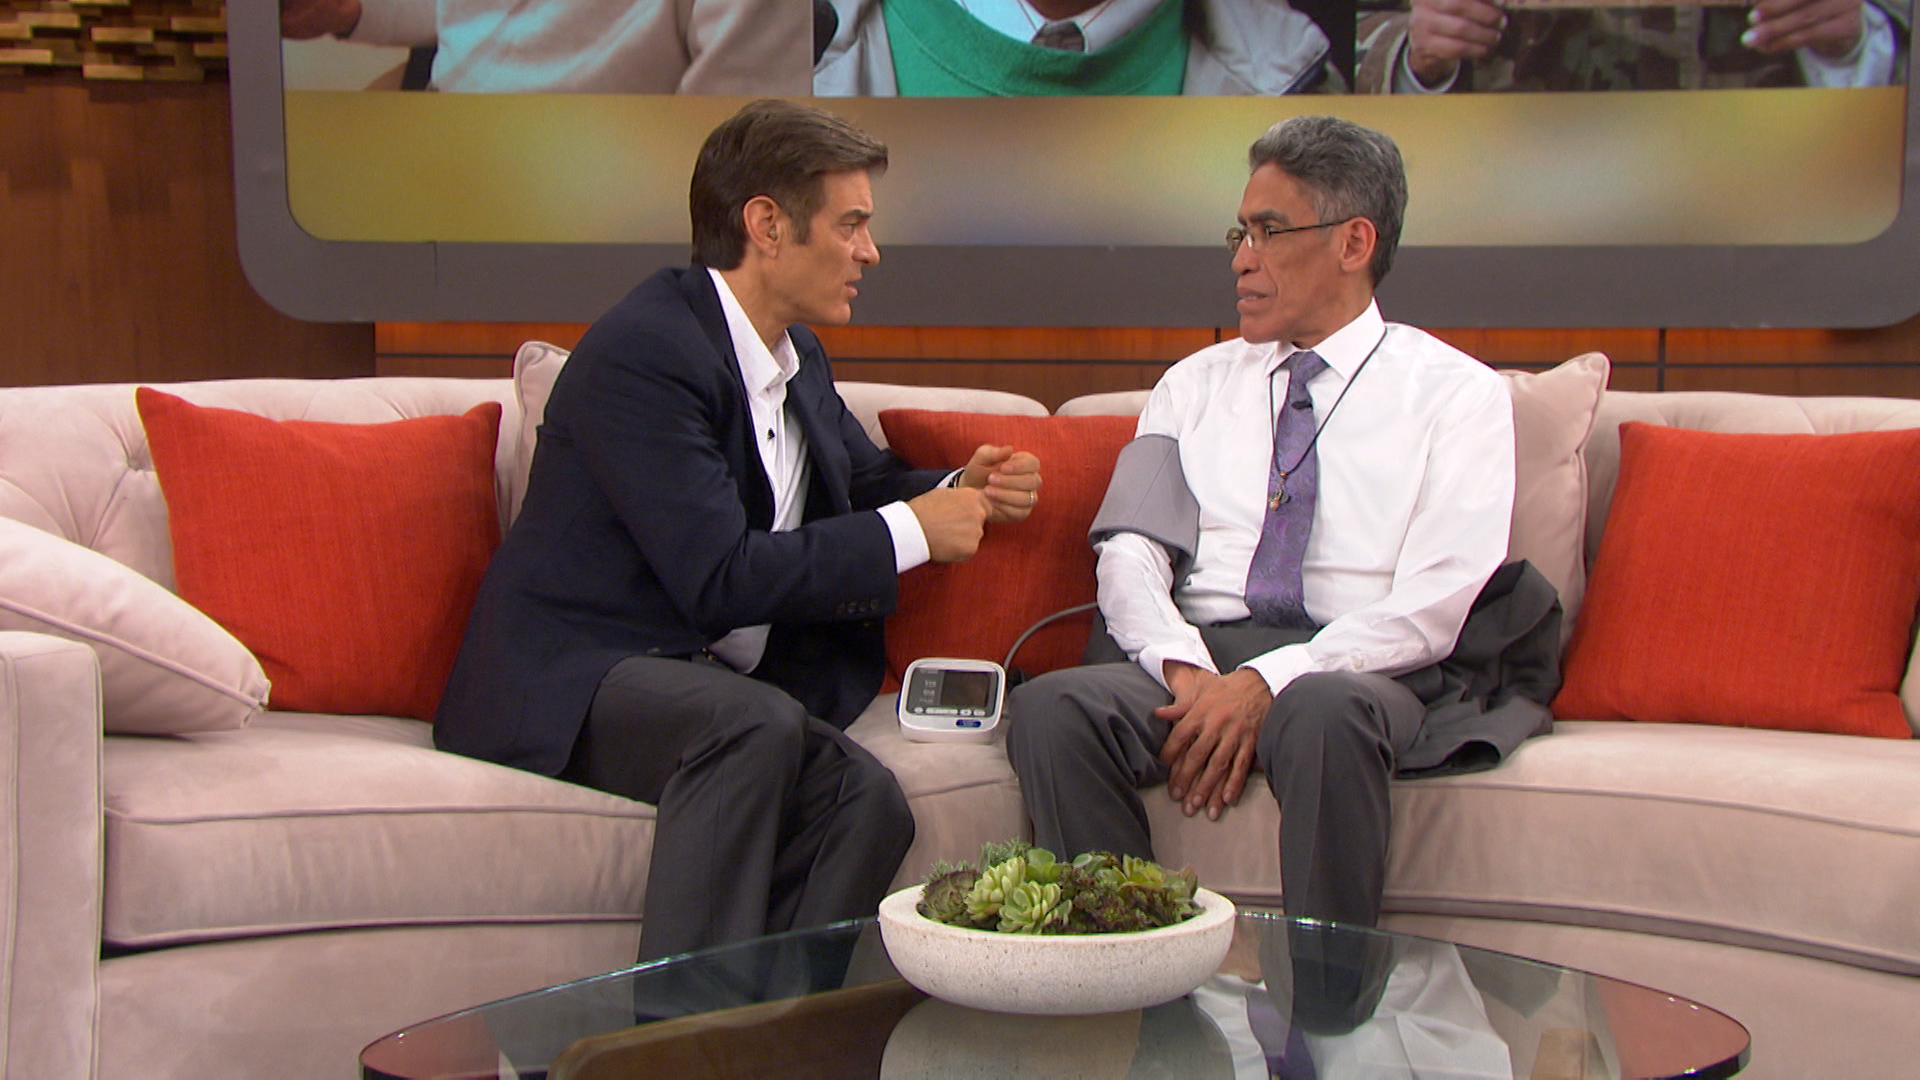 Dr. Oz Checks in With the Man With the Golden Voice